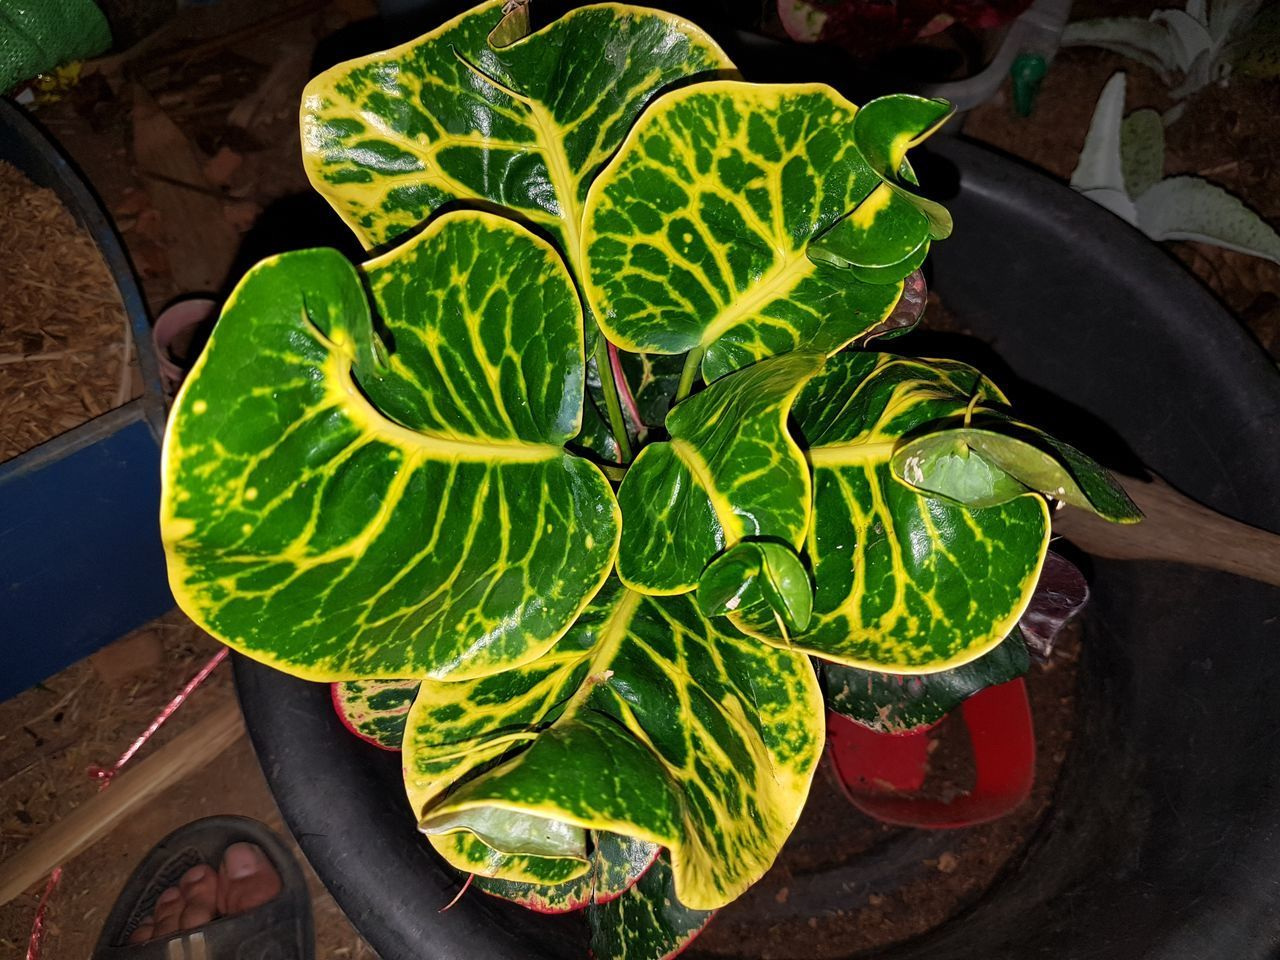 HIGH ANGLE VIEW OF FRESH GREEN LEAVES IN POTTED PLANT